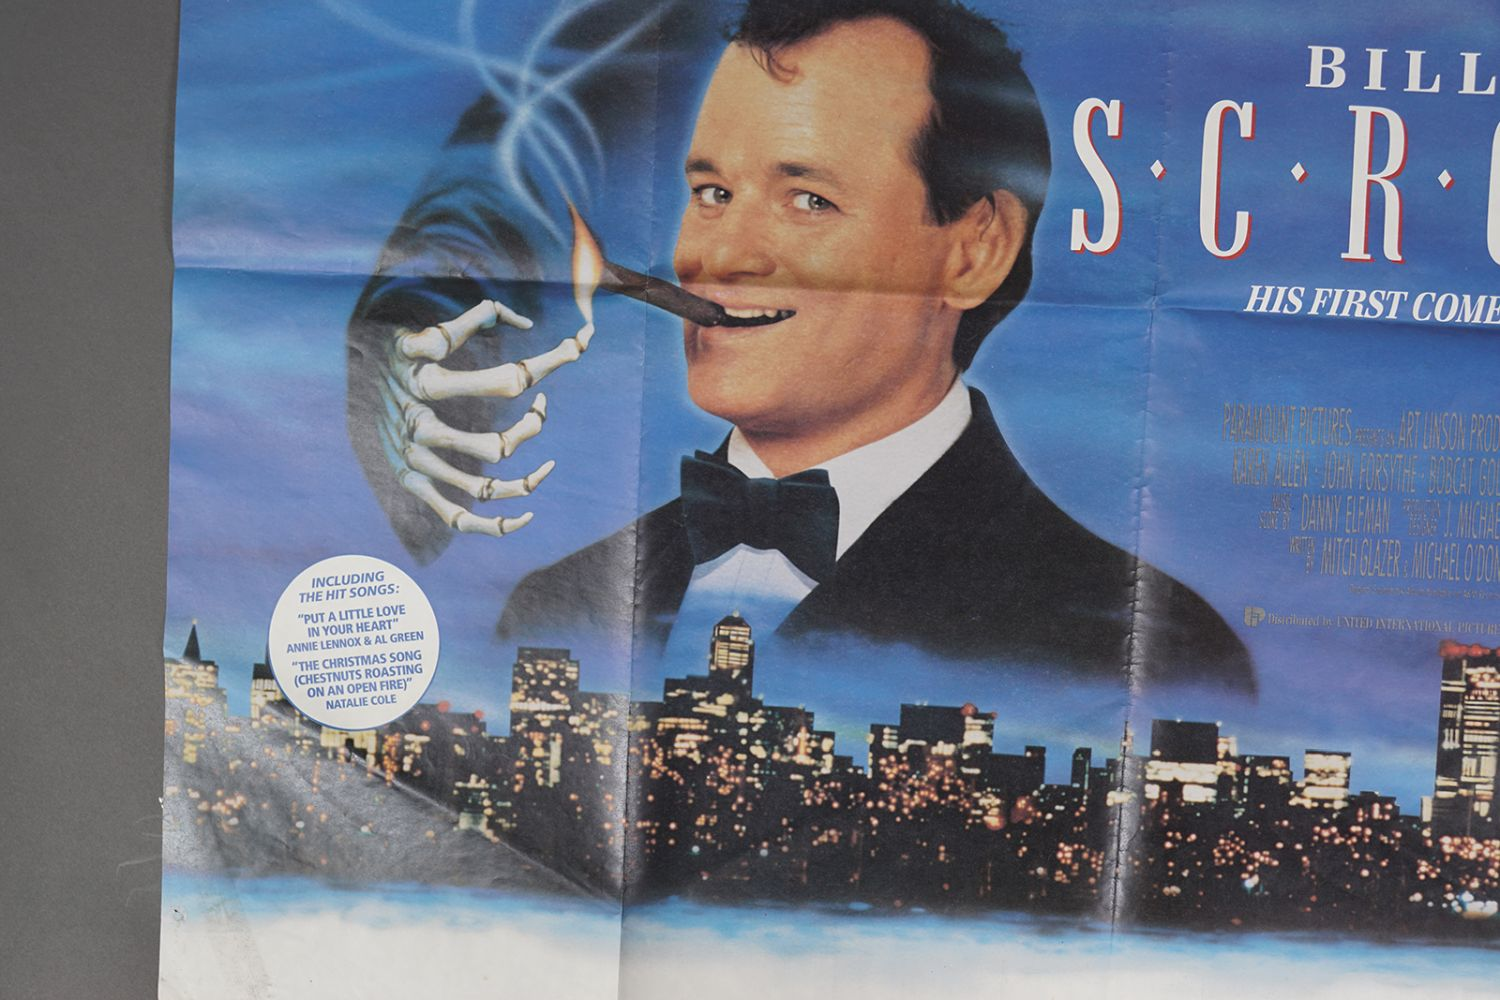 SCROOGED - Image 2 of 3